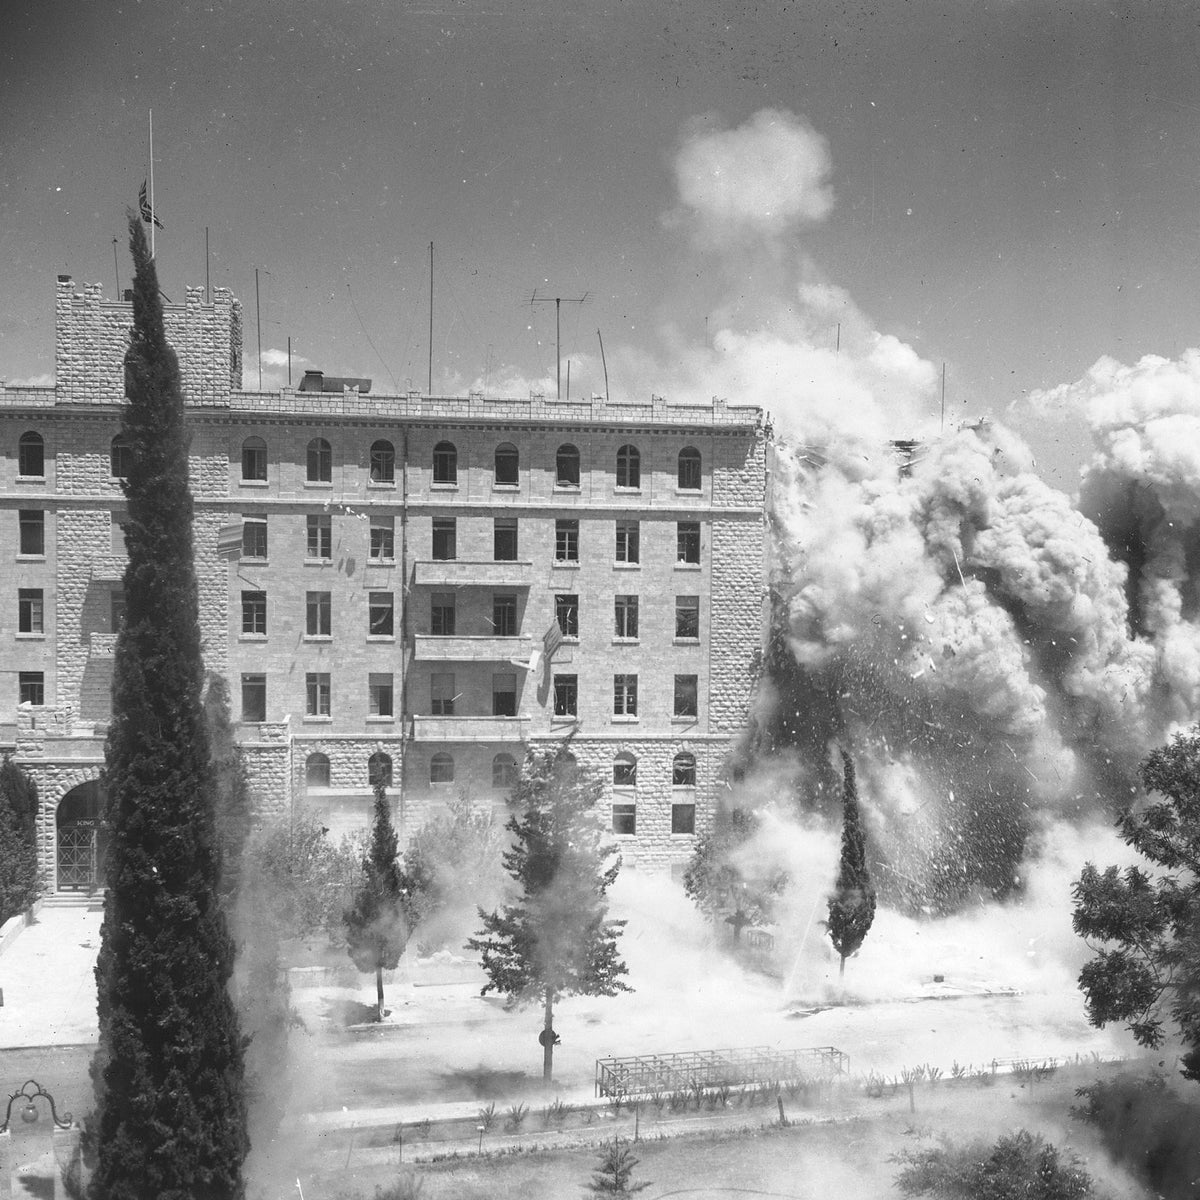 Demolition work being done on the King David Hotel in August, 1946 by sappers, one week after the actual explosion.